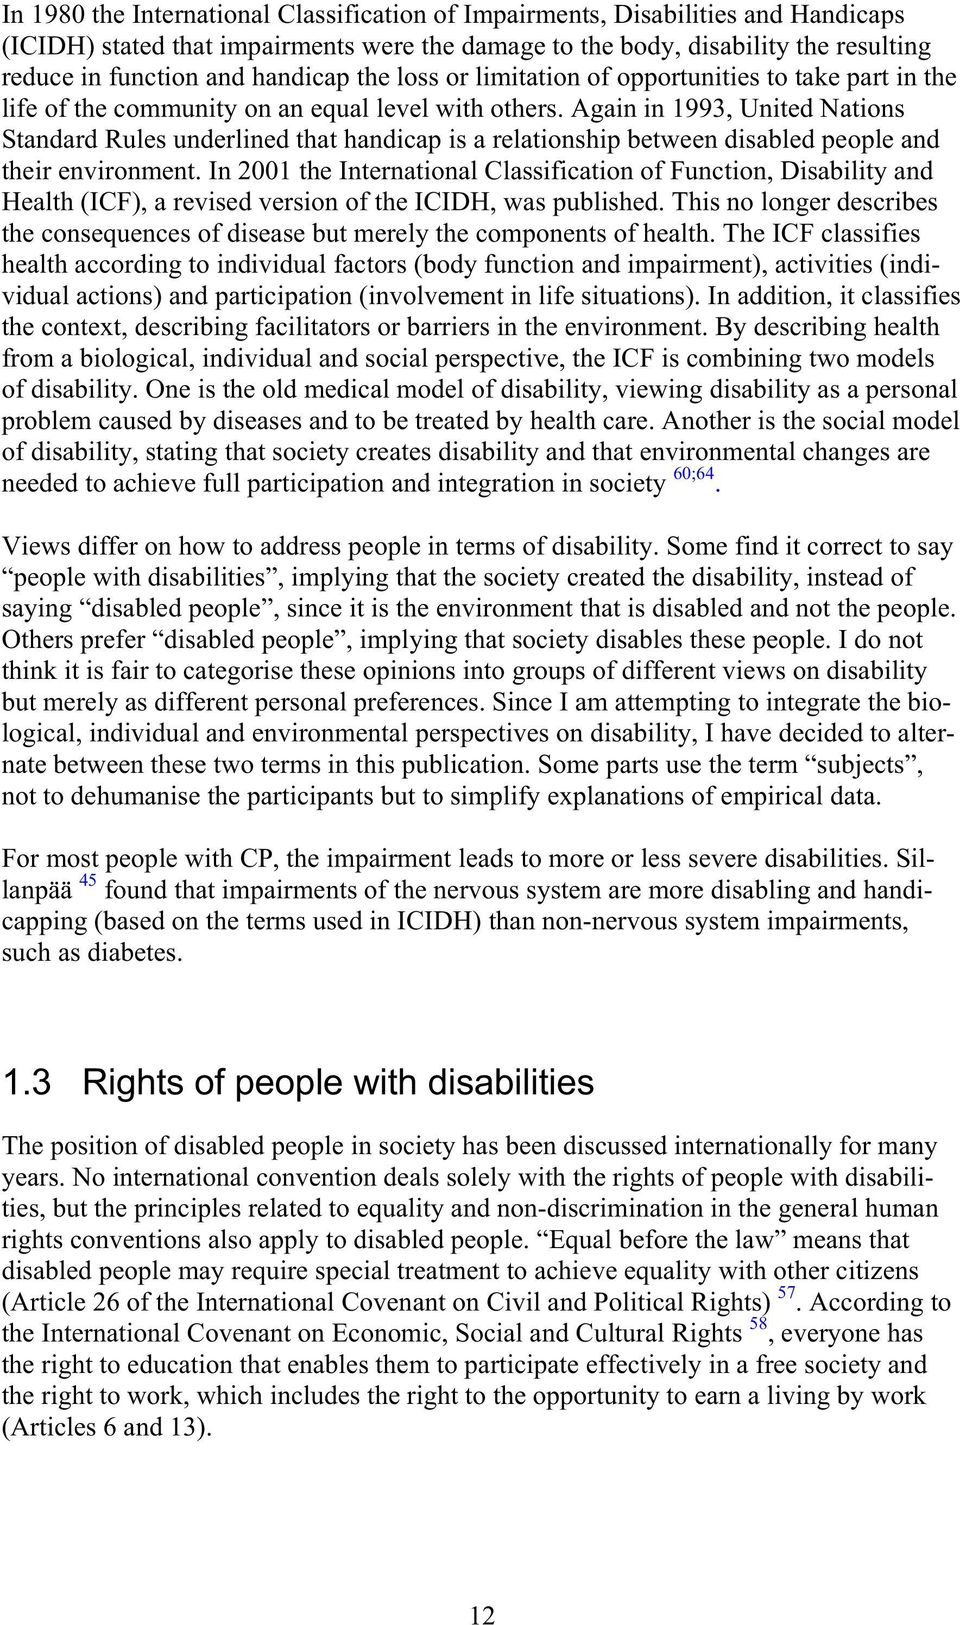 Again in 1993, United Nations Standard Rules underlined that handicap is a relationship between disabled people and their environment.